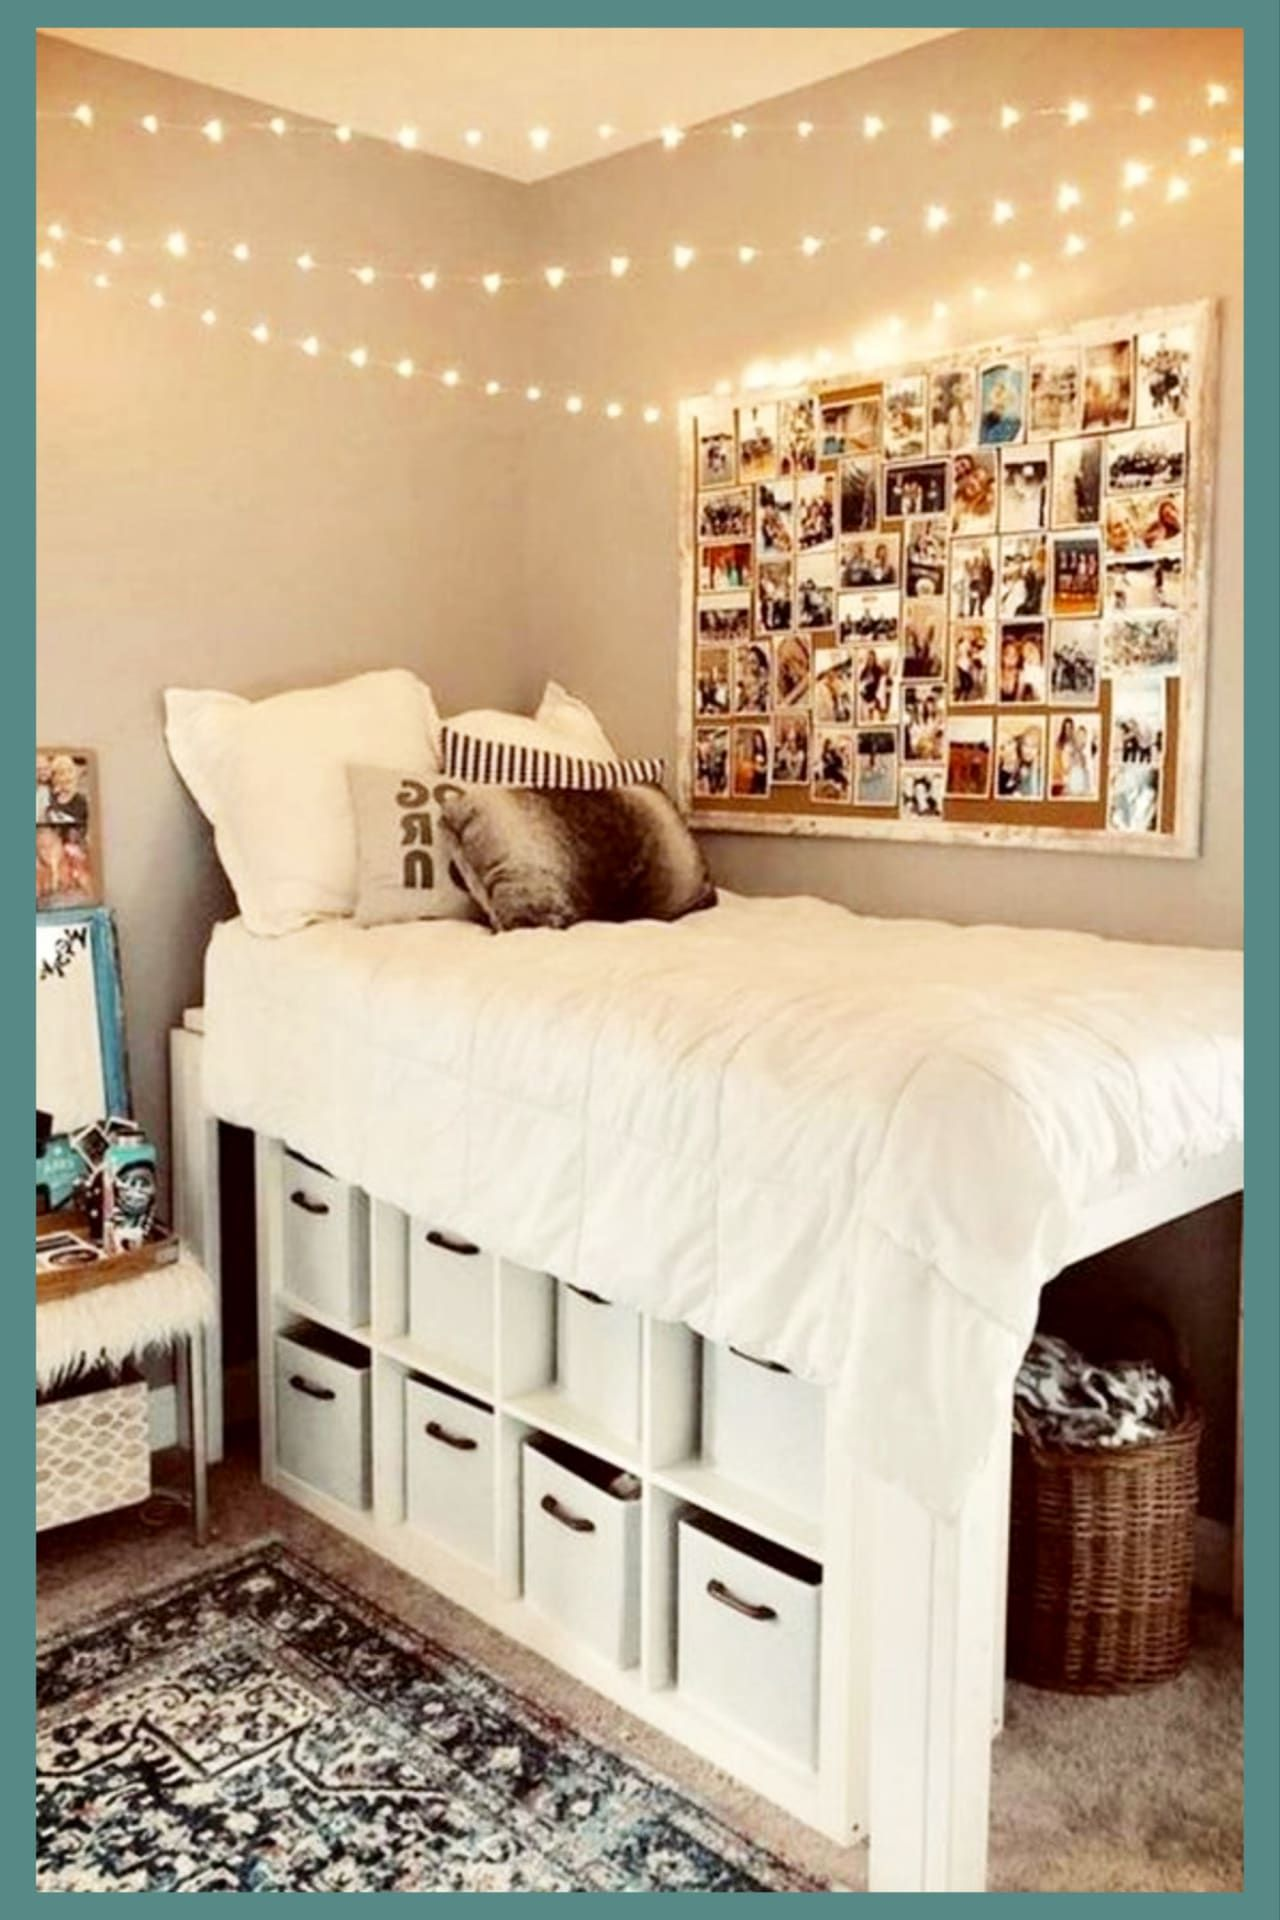 Diy Dorm Room Ideas Dorm Decorating Ideas Pictures For 2020 College Dorm Room Decor Dorm Room Diy Cool Dorm Rooms